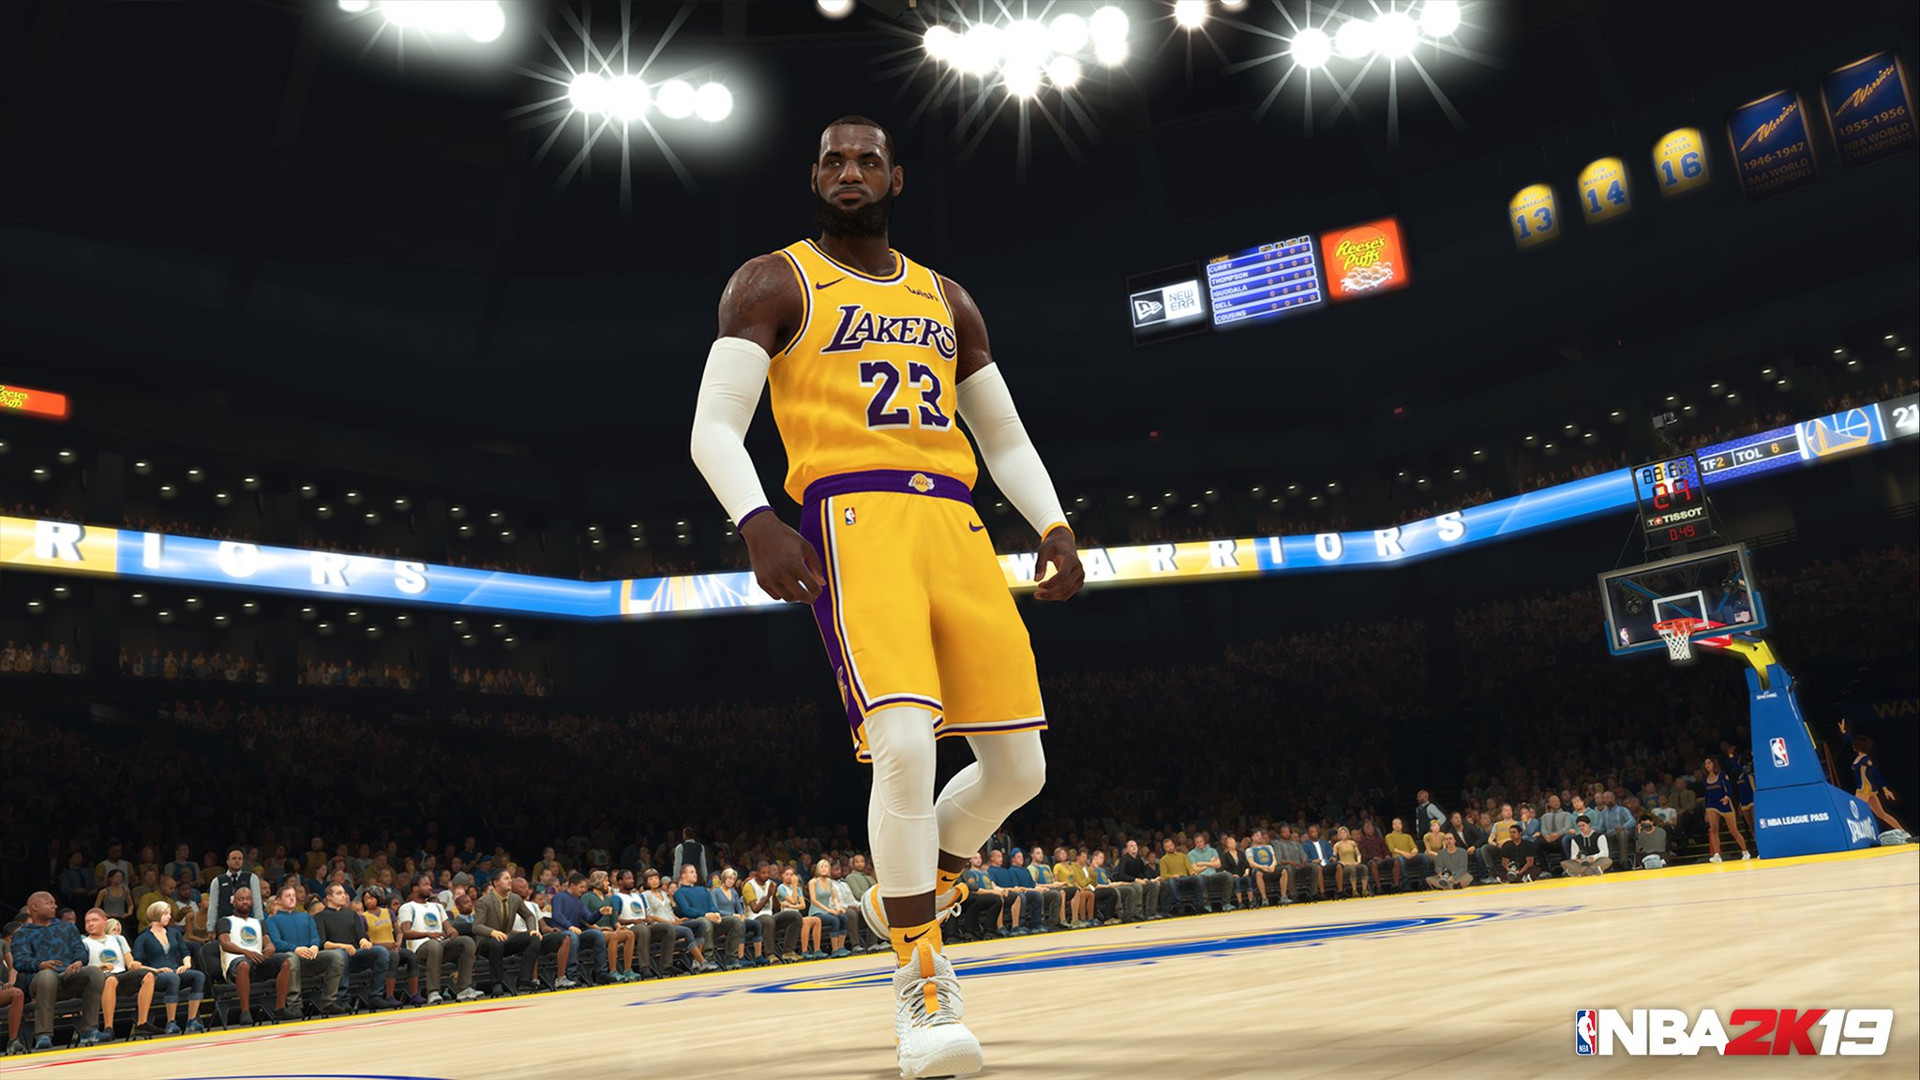 988afa7bf12 'NBA 2K19' official trailer offers first look at LeBron James playing for  Lakers | Sporting News